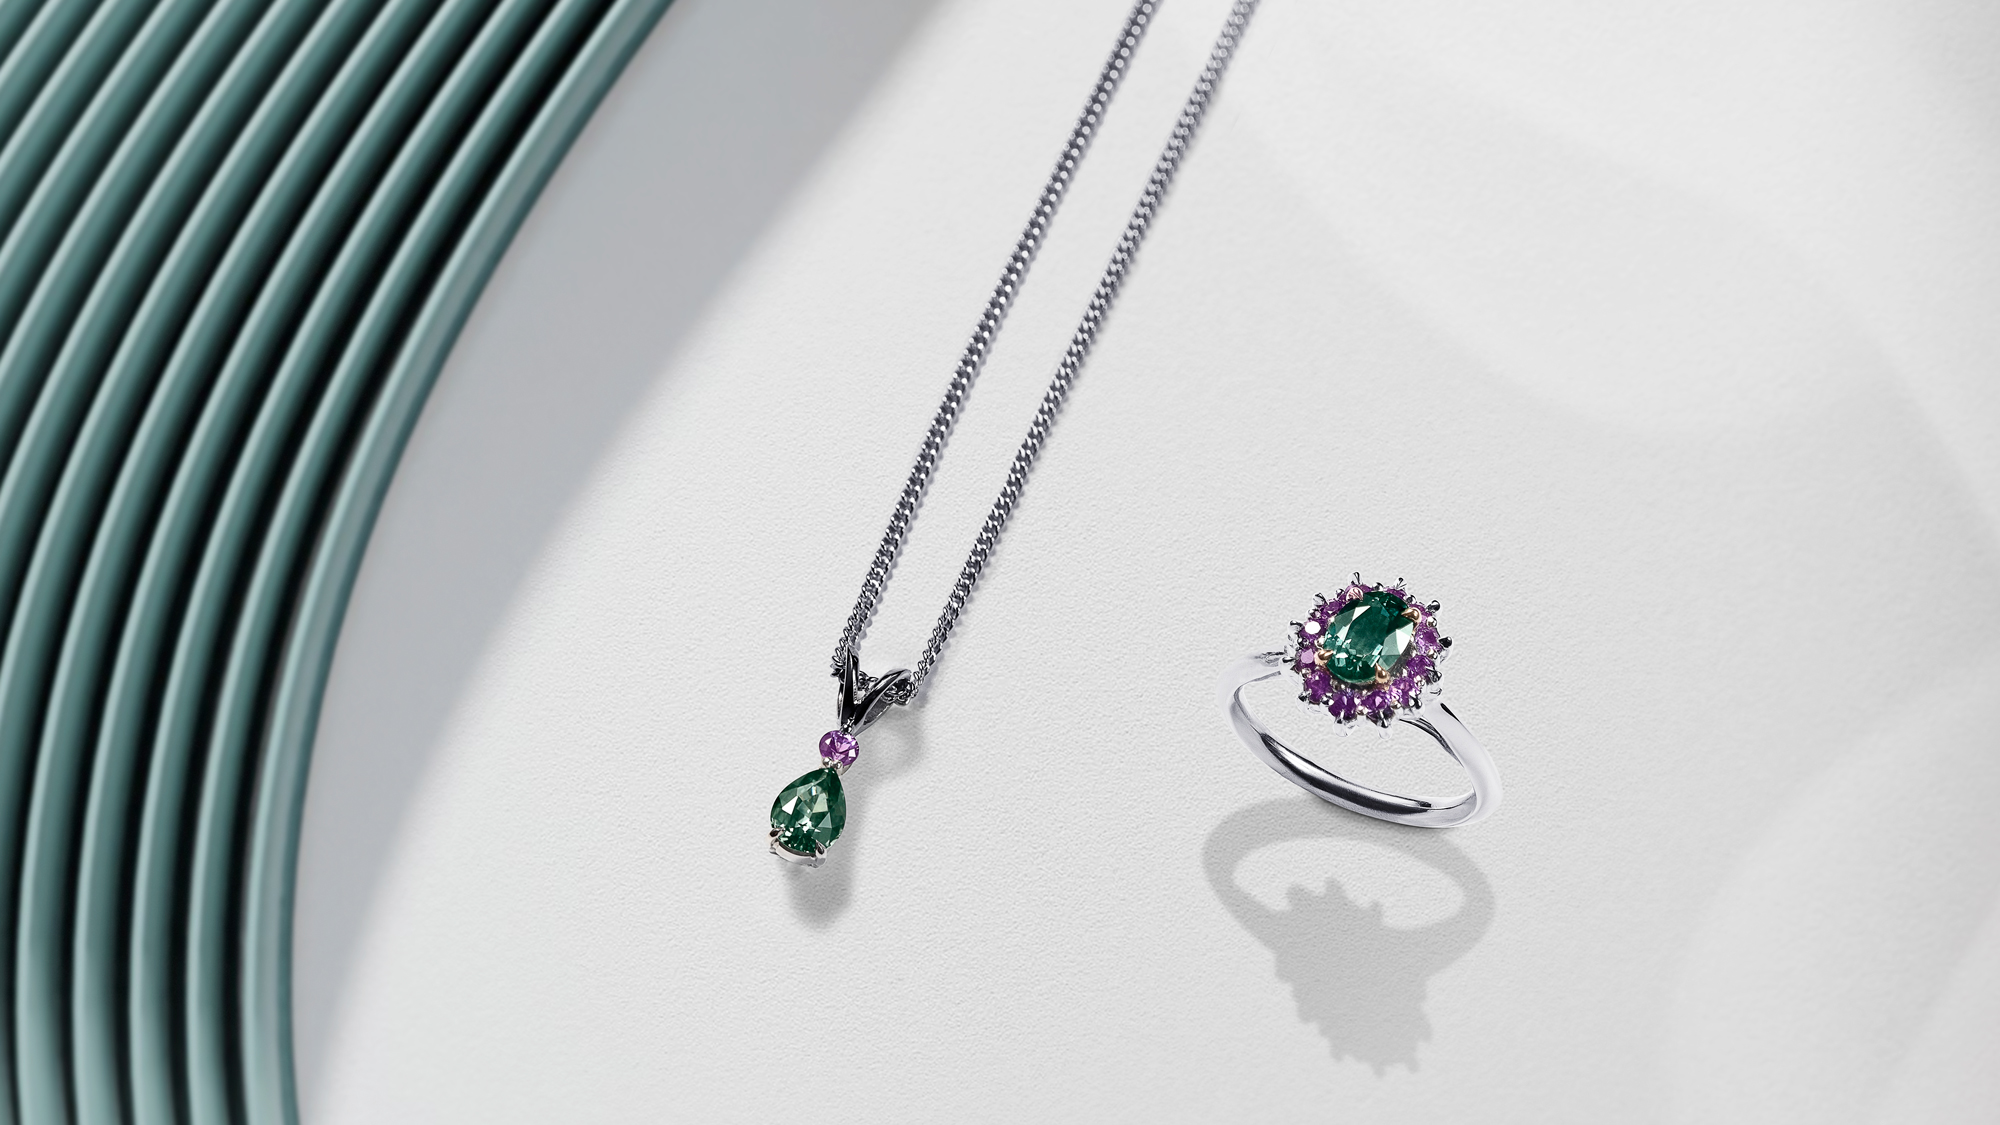 Wenbo Zhao-CGI Jewellery Photography with Object Maker-Green and Purple Sapphire Ring and Necklace CGI